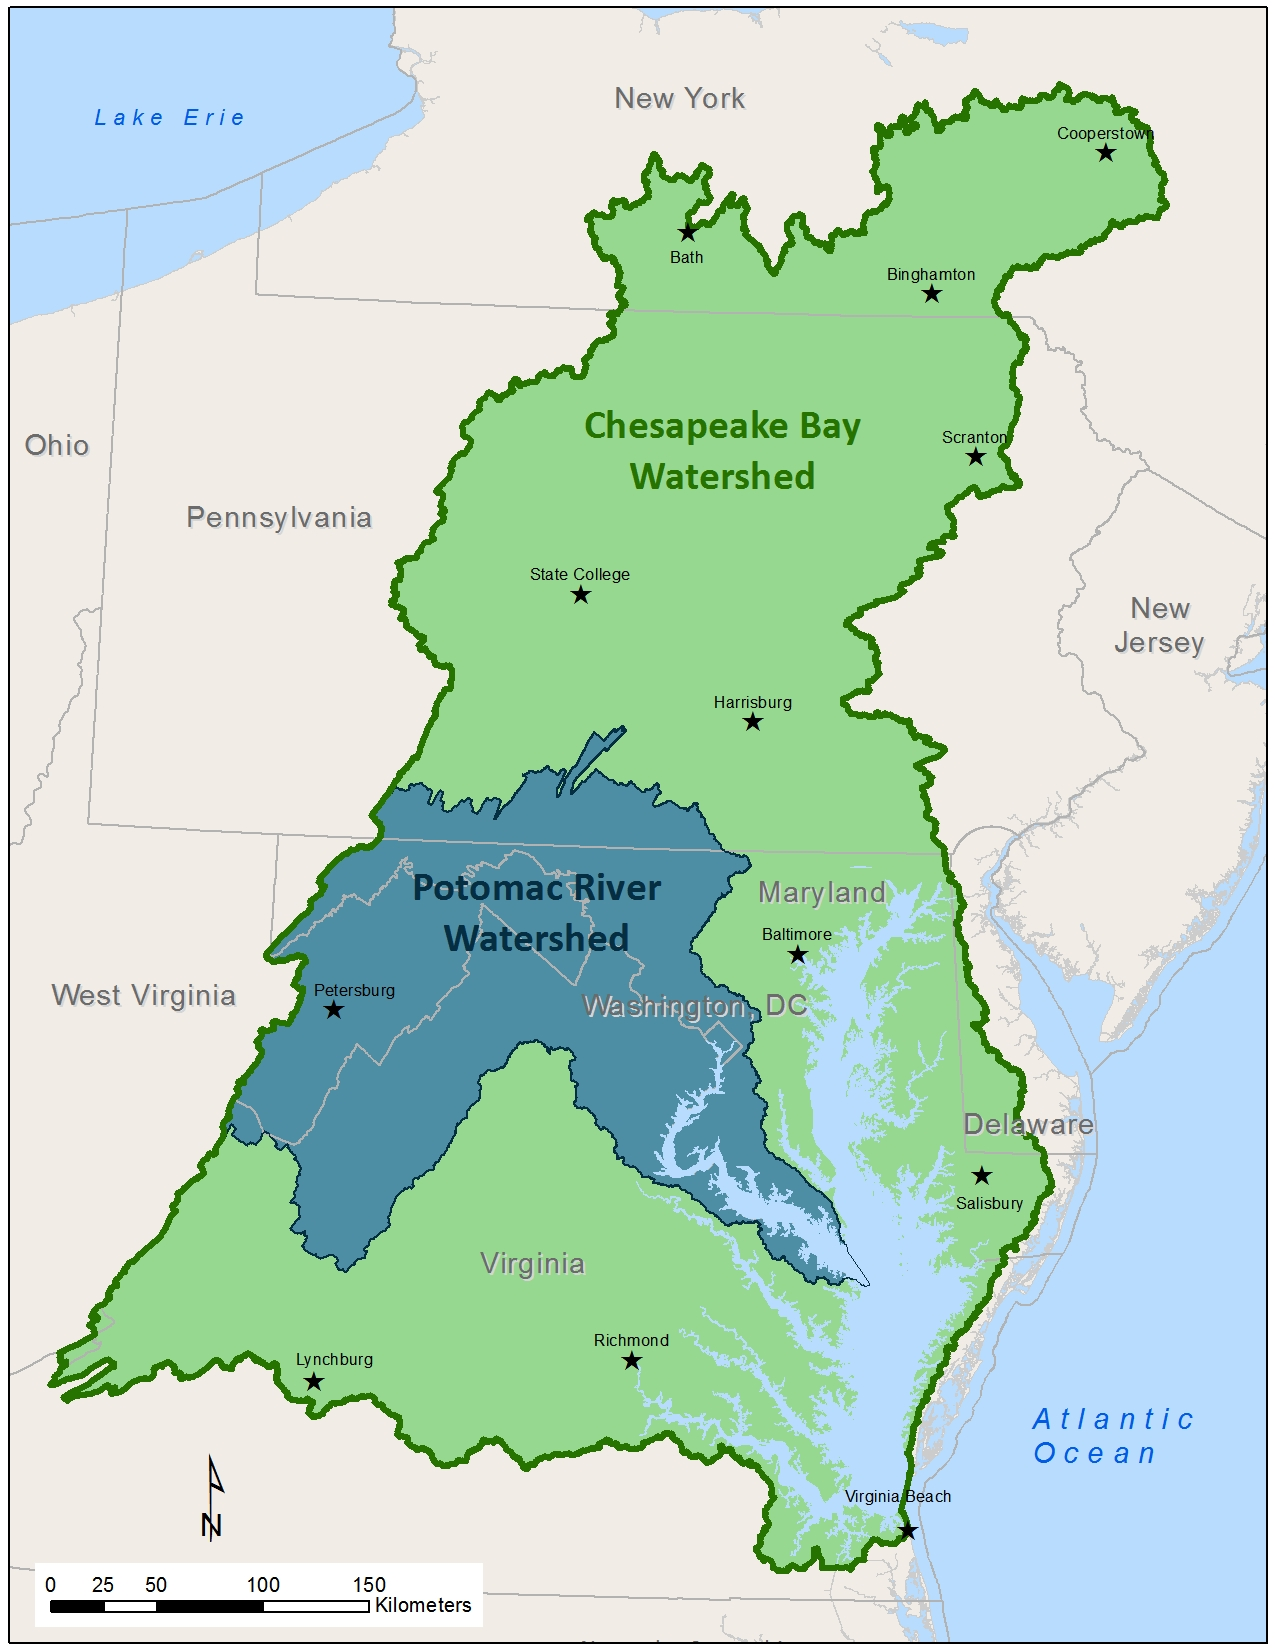 Icprb And The Chesapeake Bay Program